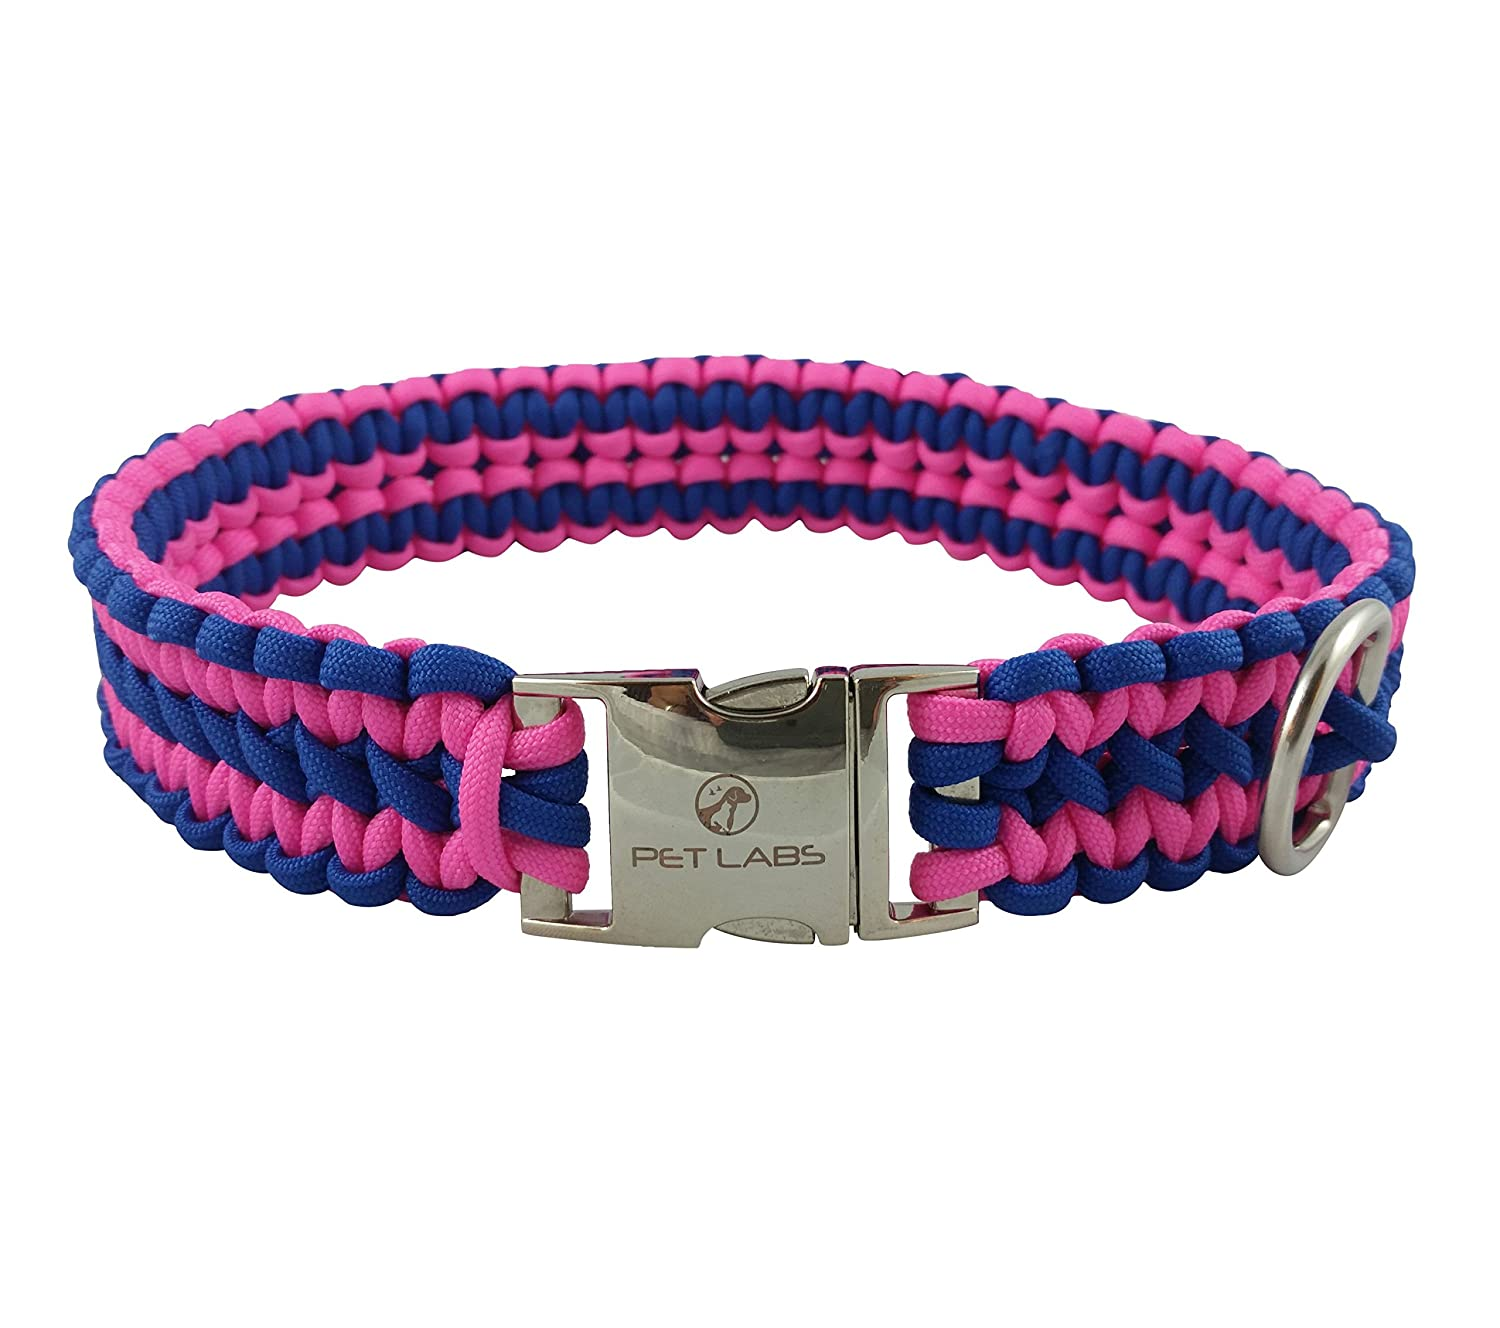 23.32in   59cm Pet Labs Paracord Dog Collar bluee and Bright Pink (23.32in   59cm)